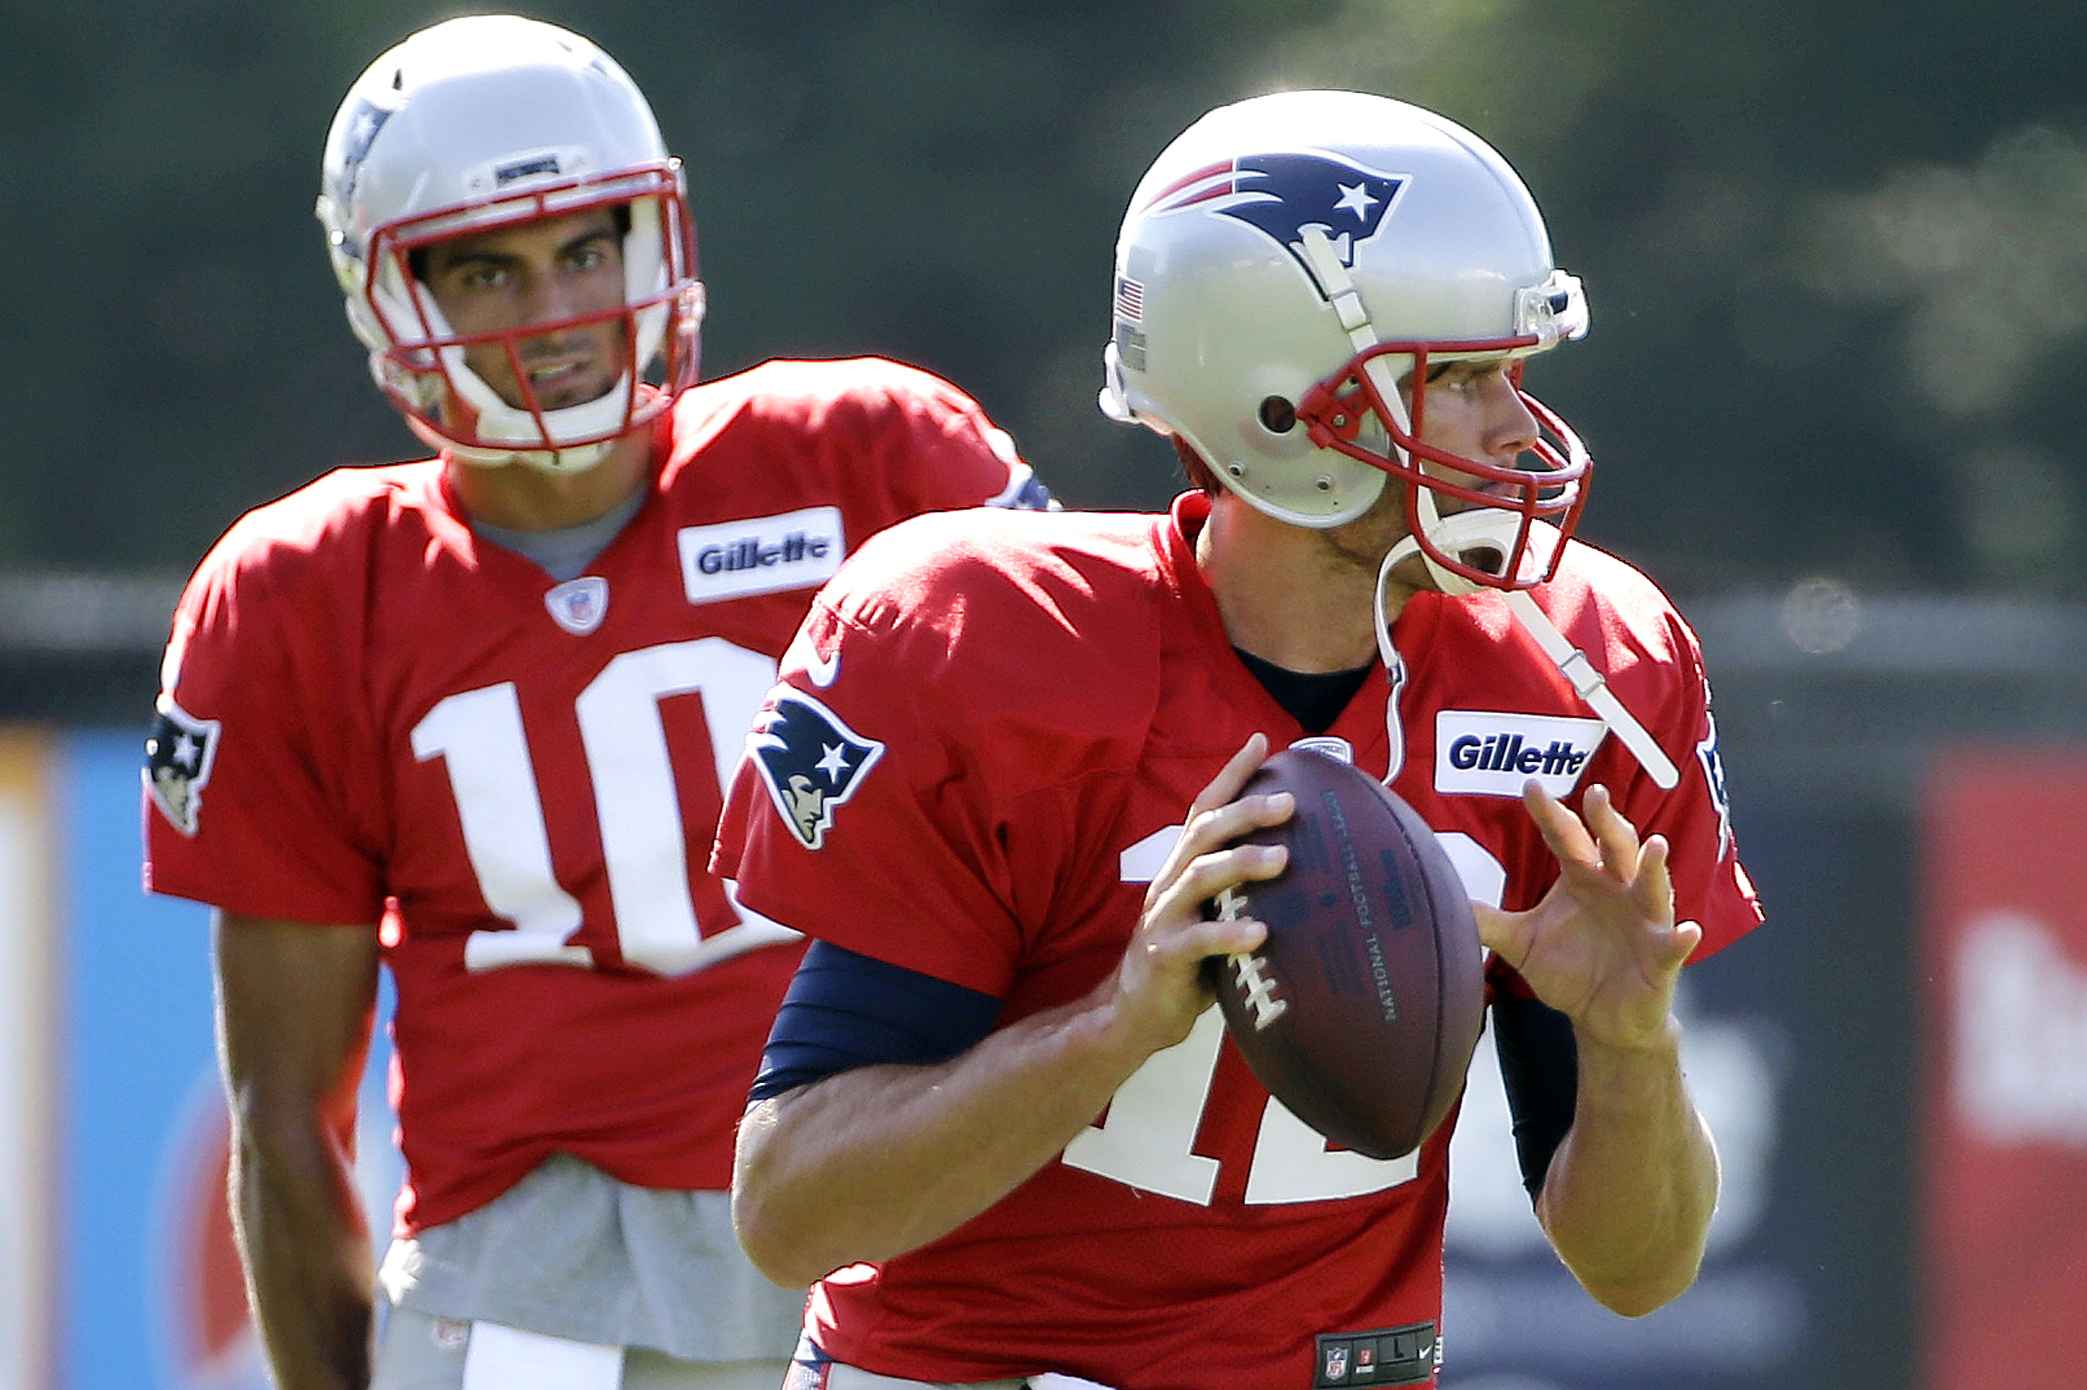 FILE - In this Tuesday, Aug. 9, 2016, file photo, New England Patriots quarterback Tom Brady (12) gets set to throw a pass as quarterback Jimmy Garoppolo (10) watches during NFL football training camp in Foxborough, Mass. This is one unusual summer for th